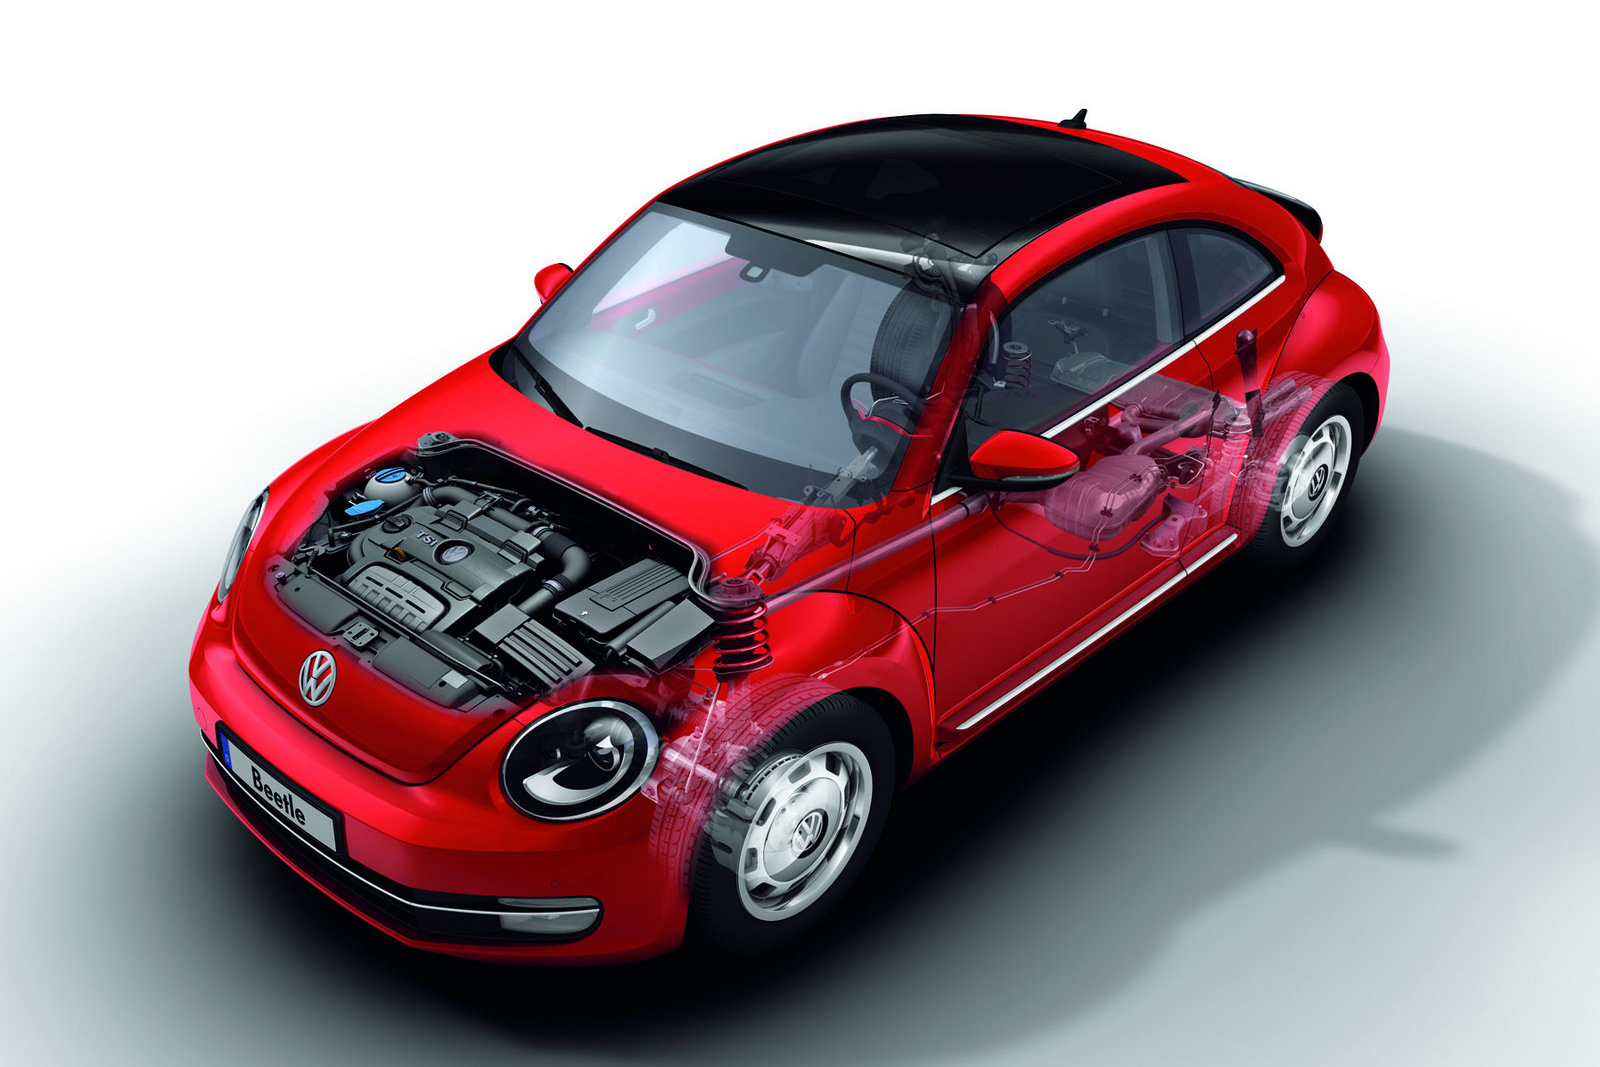 Volkswagen Details New Euro 6 Engines For Beetle Coupe And